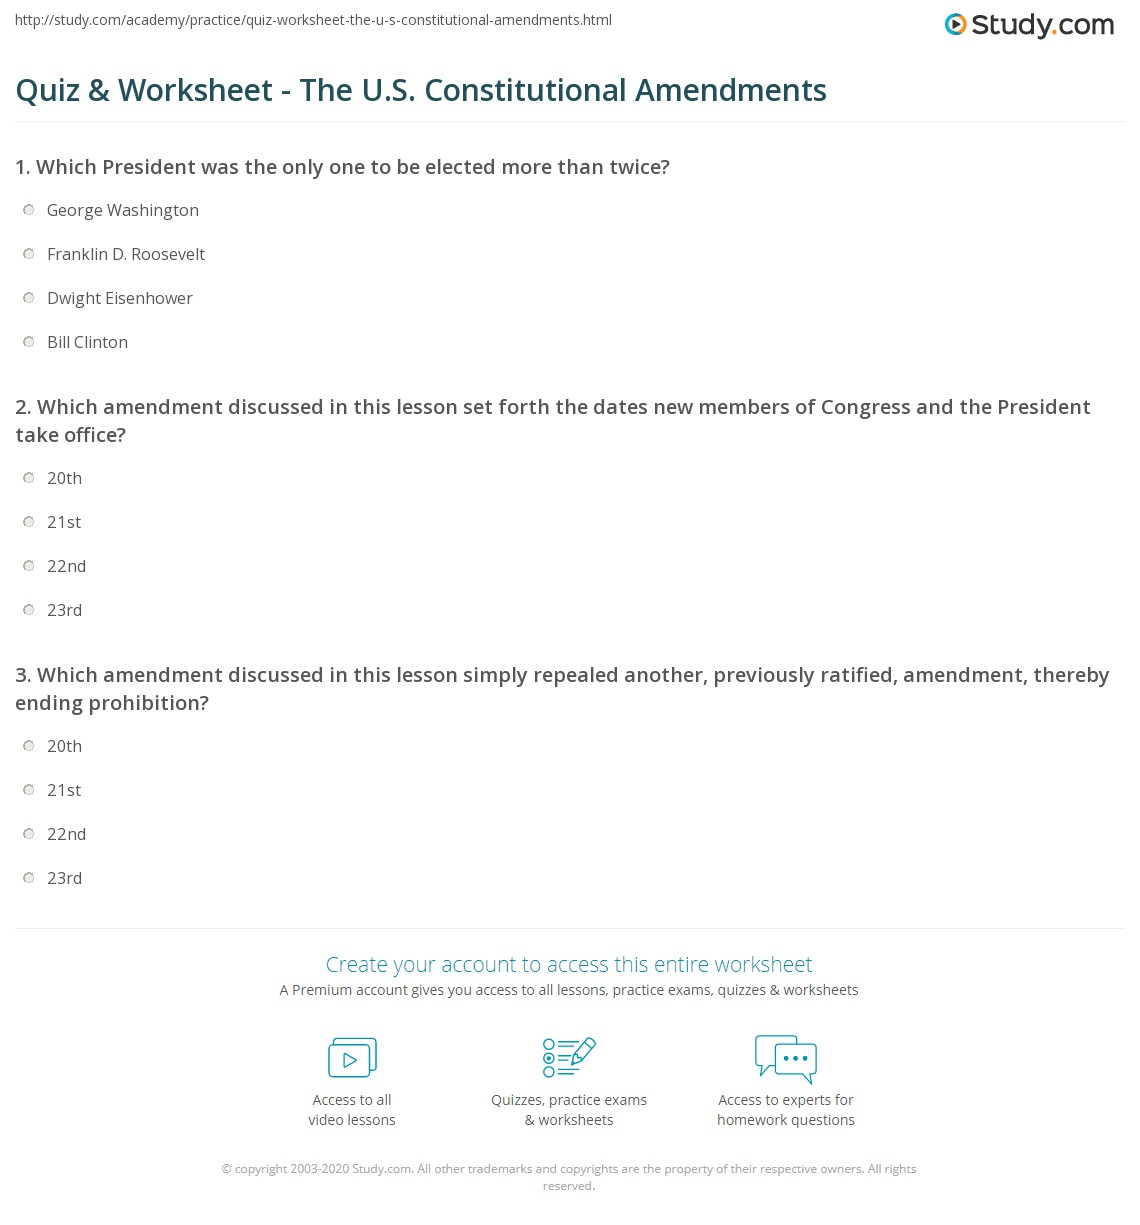 Worksheets Constitutional Amendments Worksheet quiz worksheet the u s constitutional amendments study com print 20th 21st 22nd 23rd worksheet